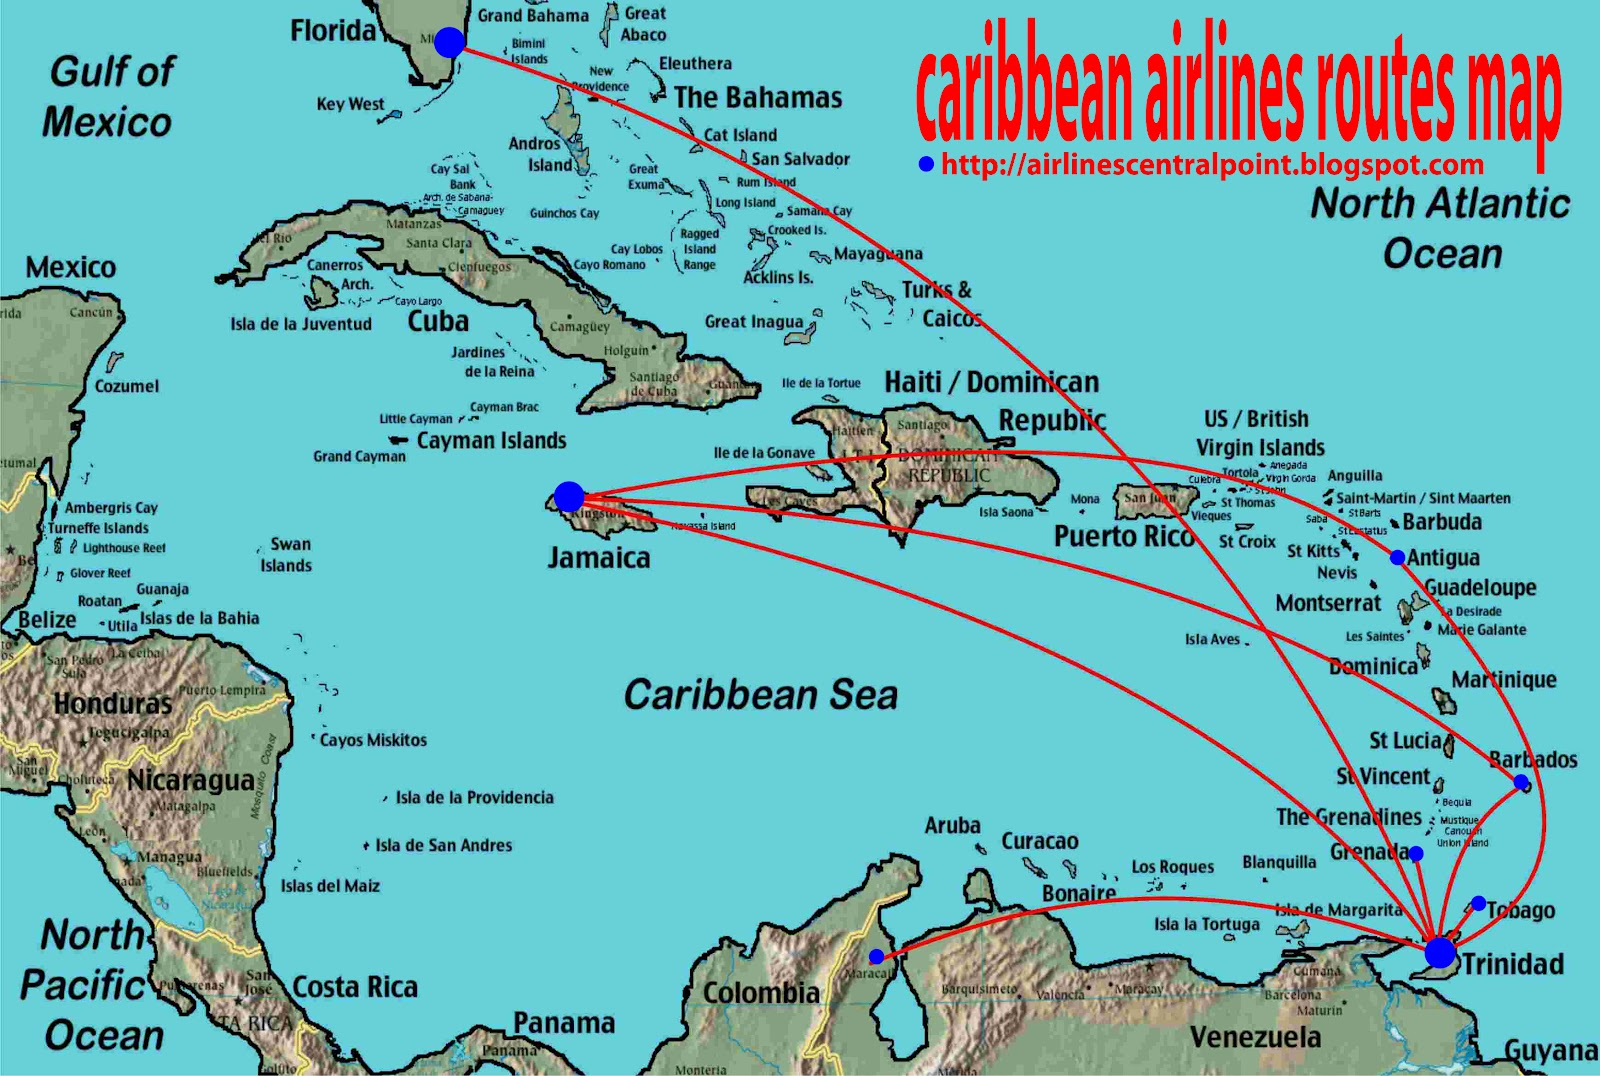 Routes Map Caribbean Airlines Routes Map